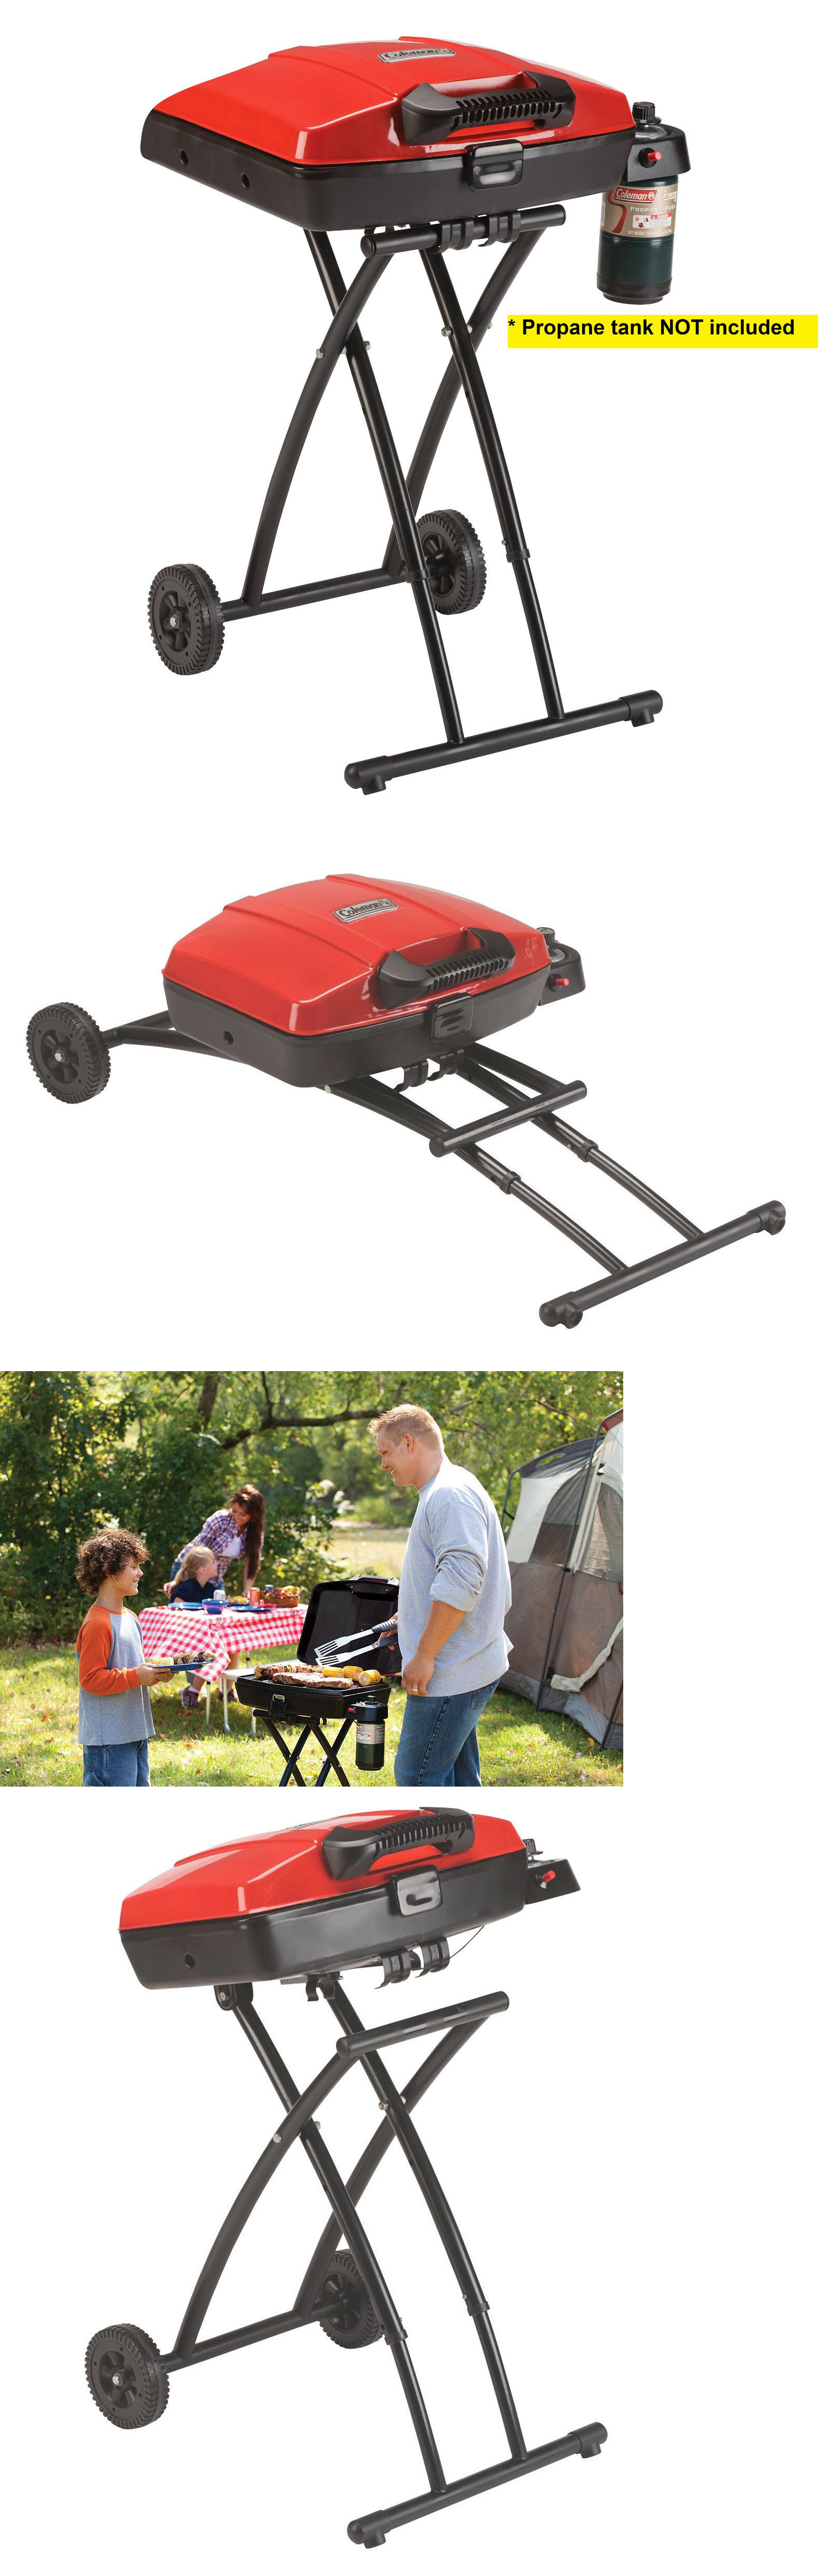 Camping BBQs and Grills 181388: **Brand New** Coleman Road Trip Sportster Propane Grill - Portable -> BUY IT NOW ONLY: $114.75 on eBay!